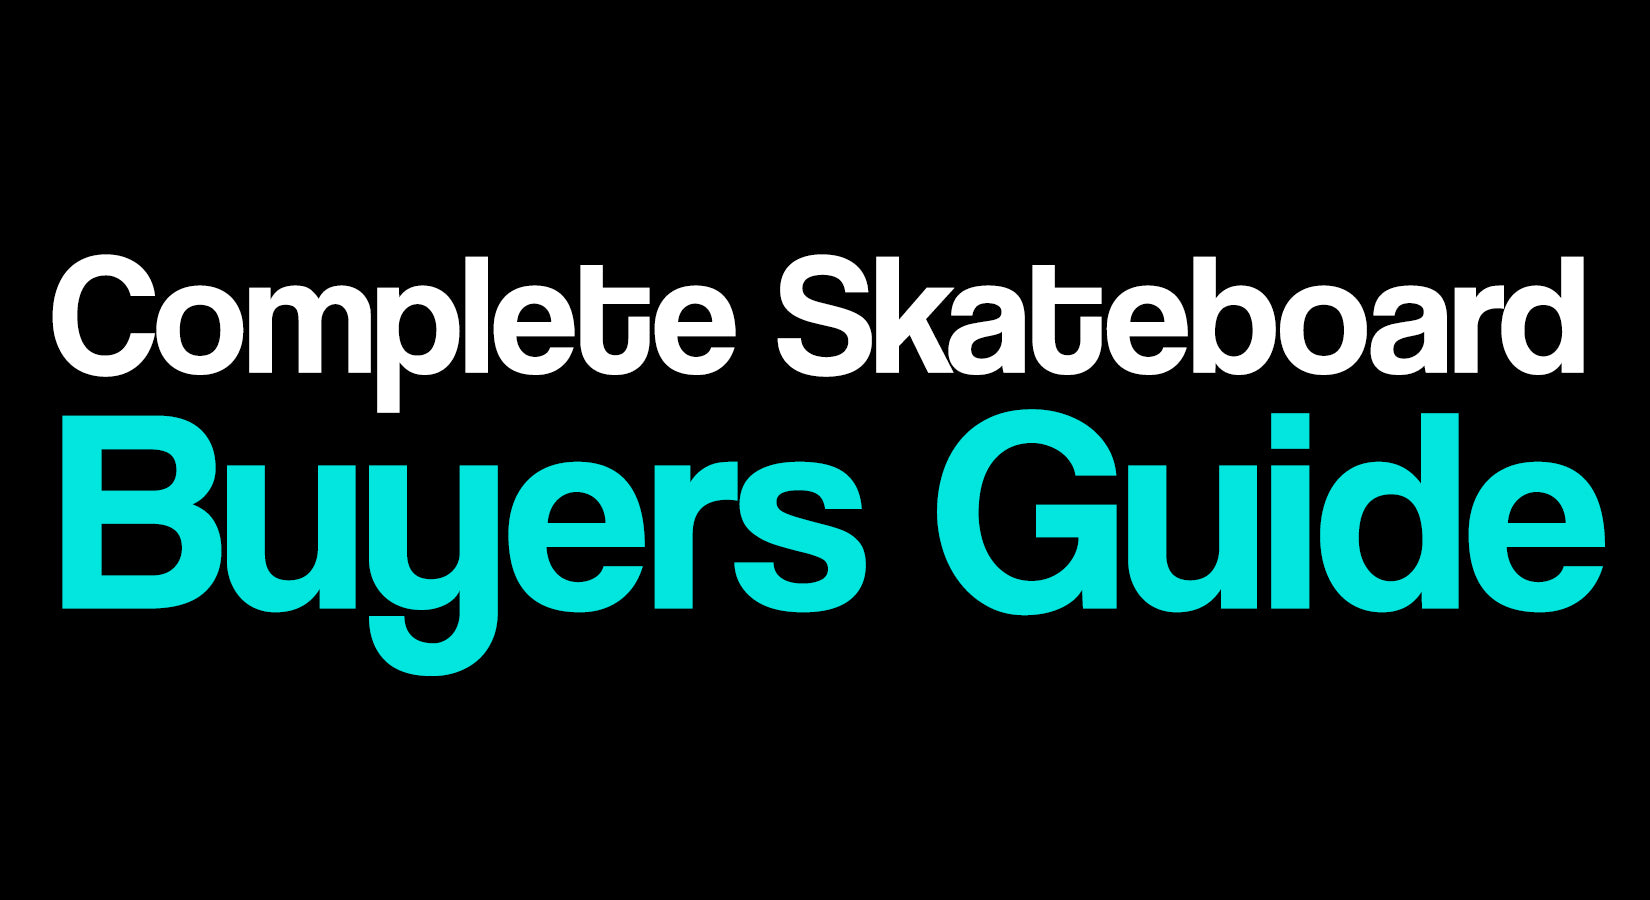 Complete Skateboards Buyers Guide